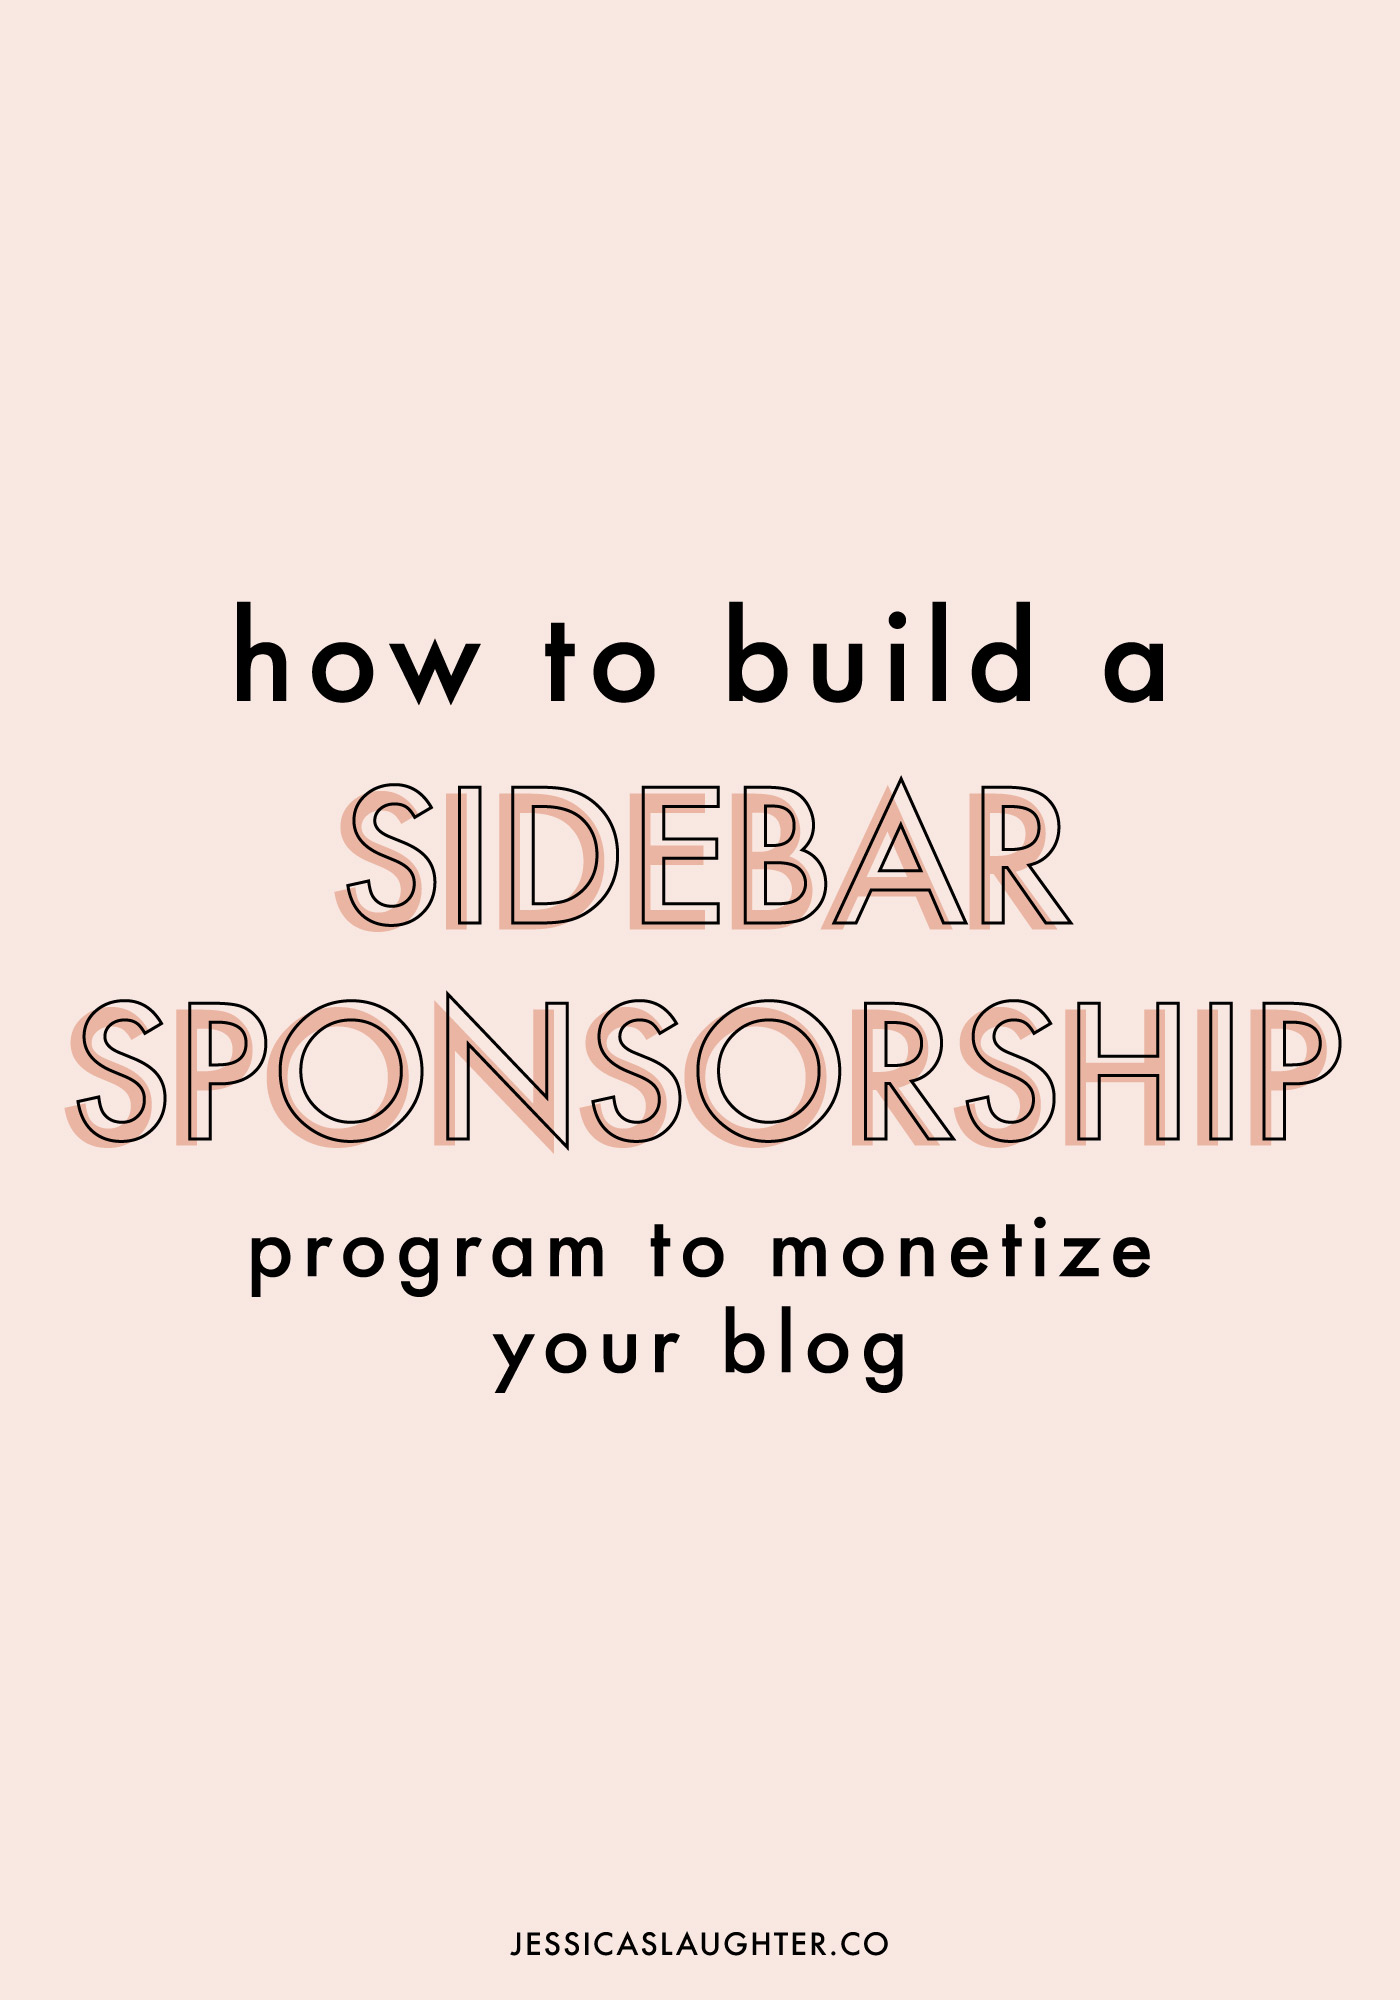 New blogger and ready to monetize? A sidebar sponsorship program might be the perfect plan for you!